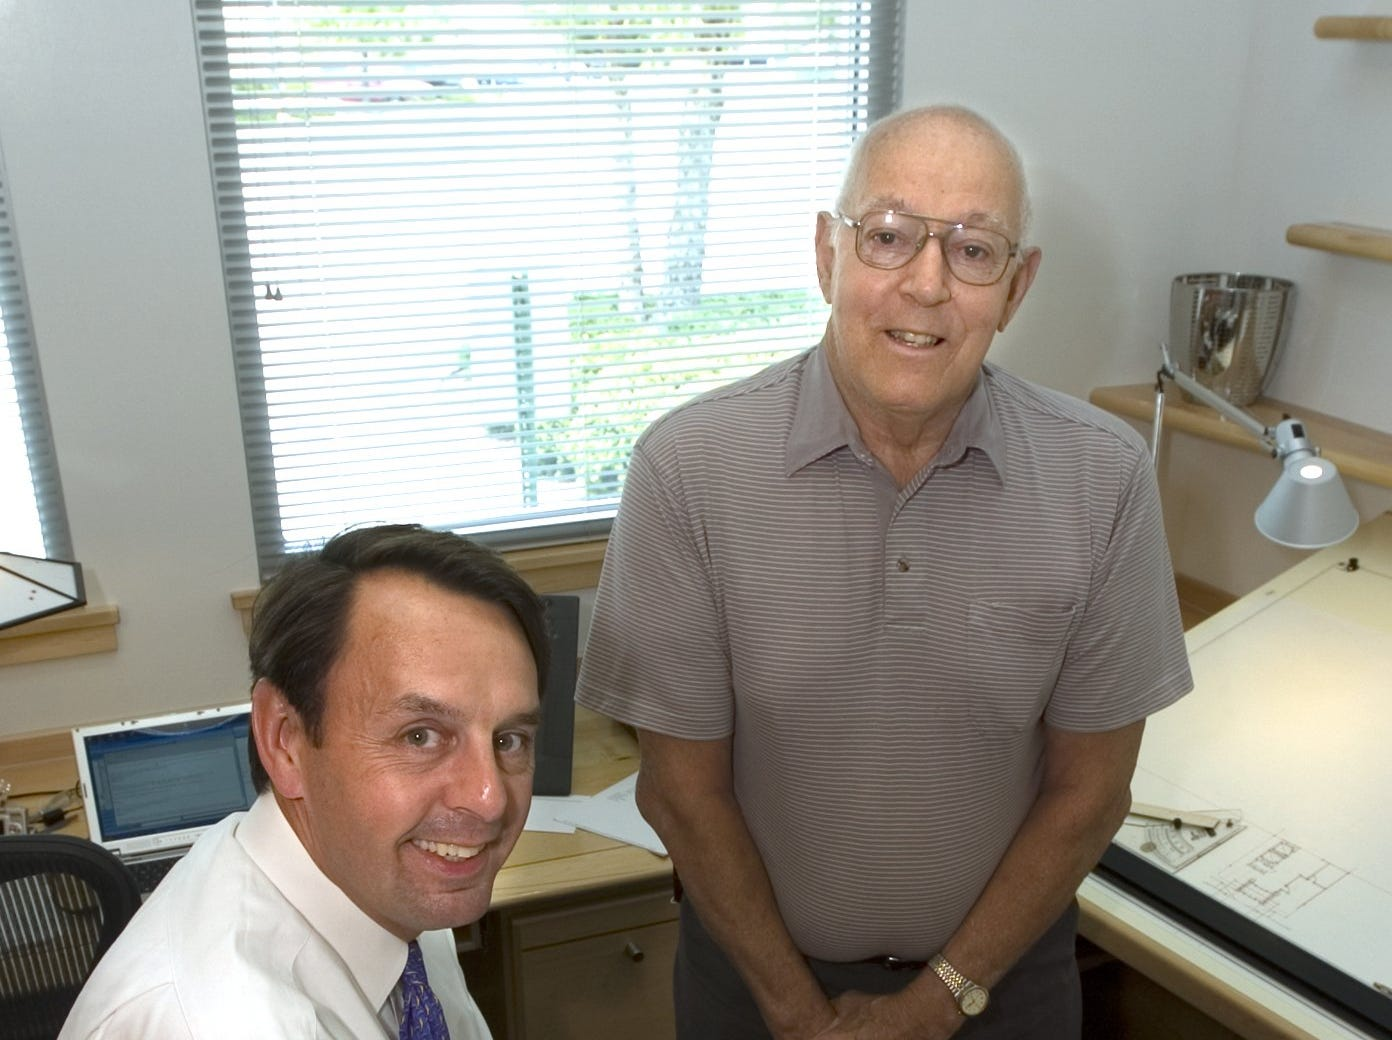 -  -Text: July 7, 2005 Photo by Michael Clevenger Wayne Estopinal, left, and Dick Scott, right. For a Moss profile.-  -Caption: By Michael Clevenger, The Courier-Journal; Wayne Estopinal, left, used to spend vacations working for Scott. Now they've switched roles.